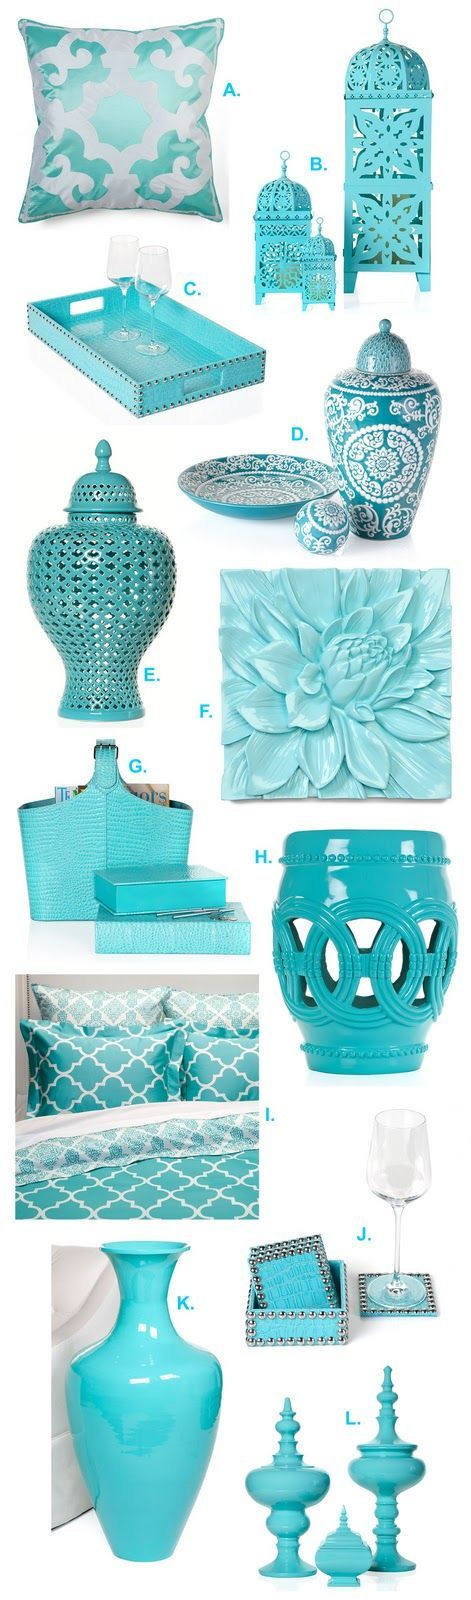 Turquoise Home Accessories | MOODBOARDS | Pinterest | Turquoise, Teal And  Aqua